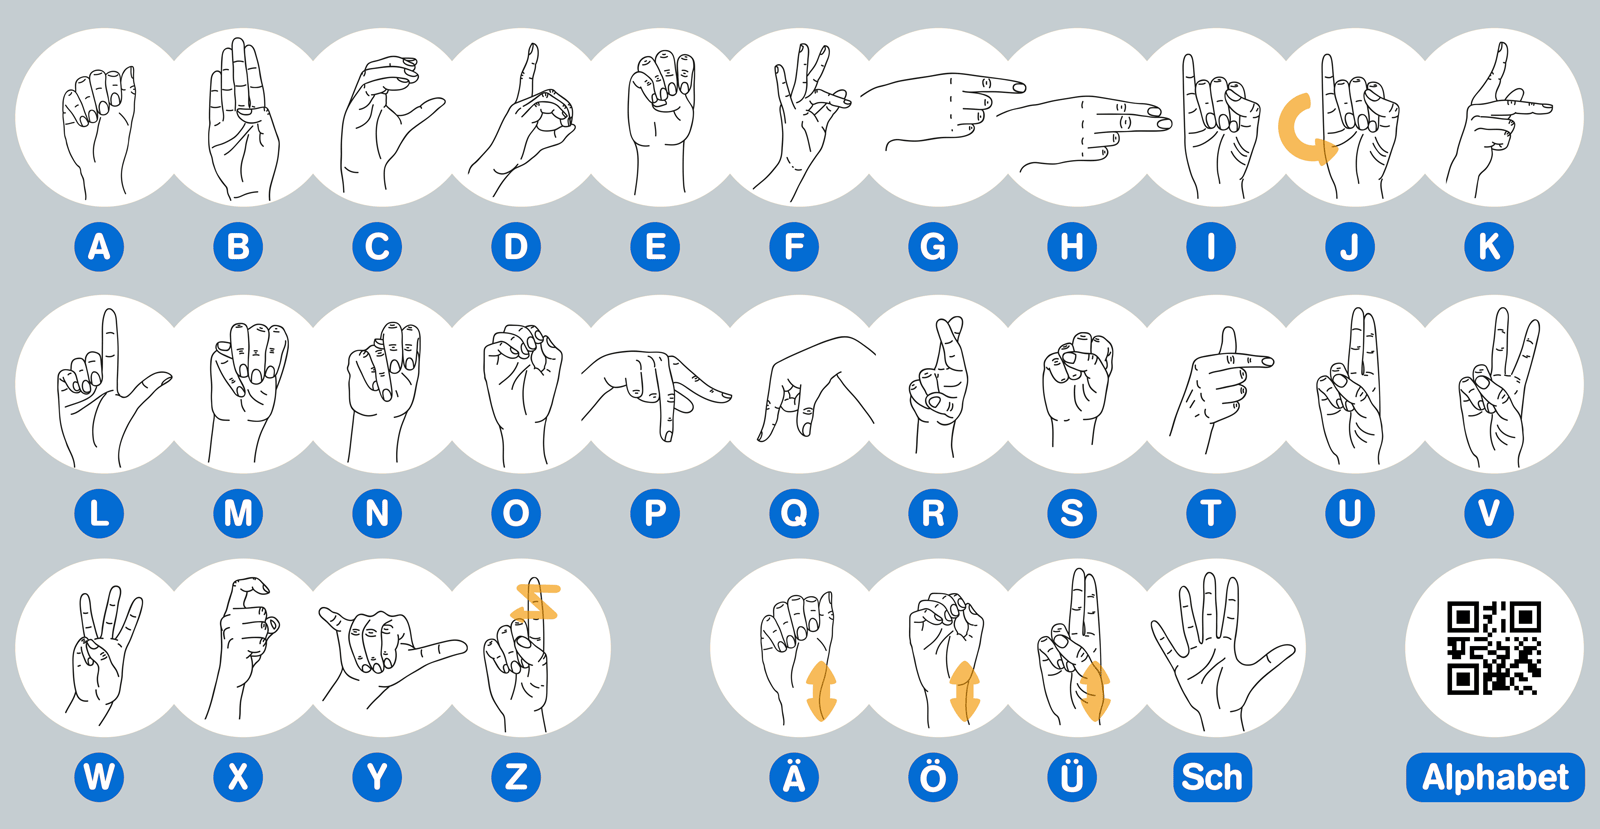 Fingeralphabet, Quelle: Aktion Mensch